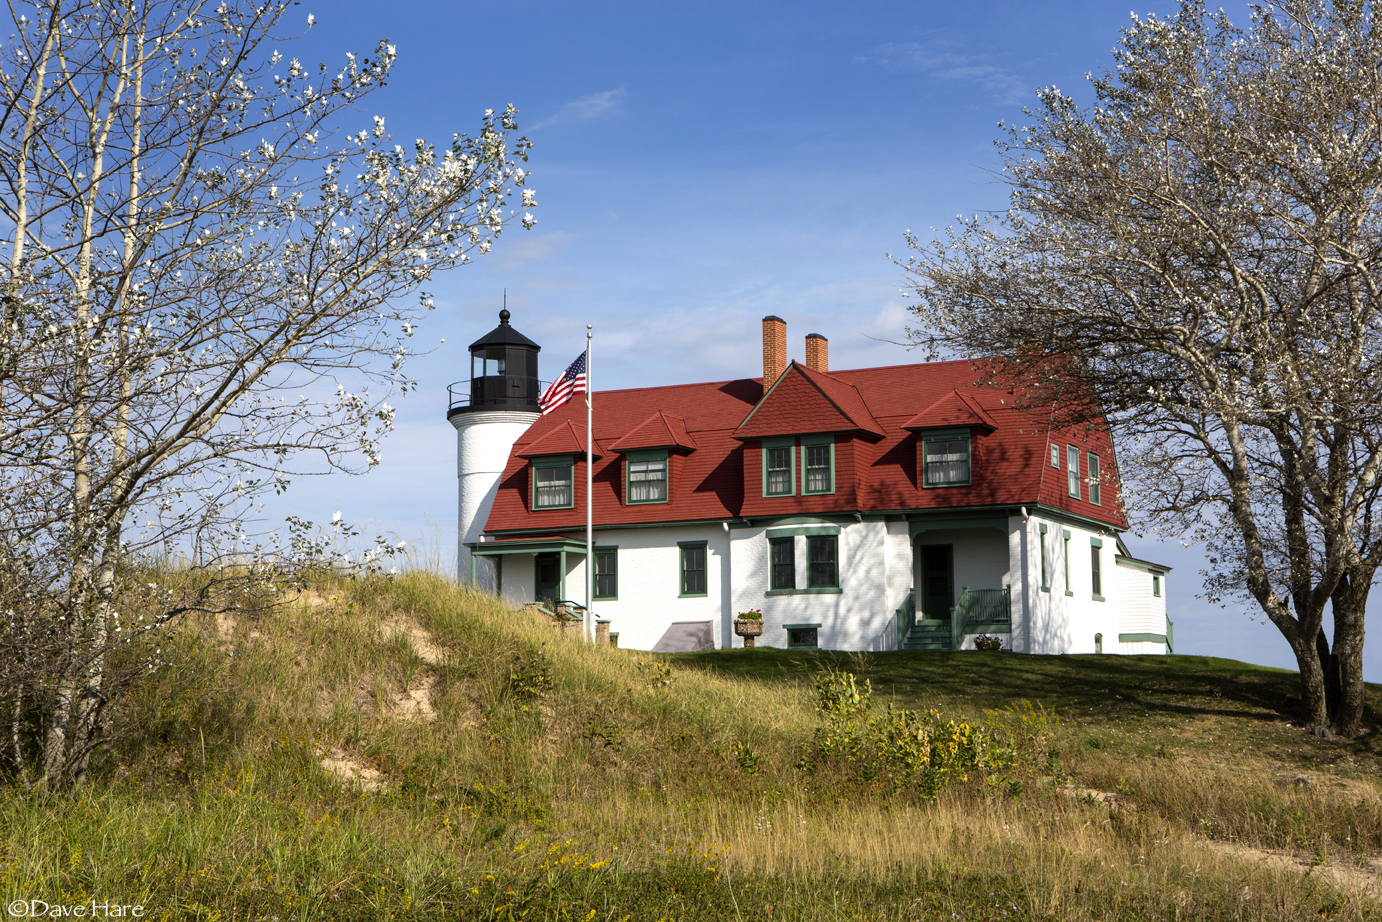 Point Betsie Oct 2015-1a